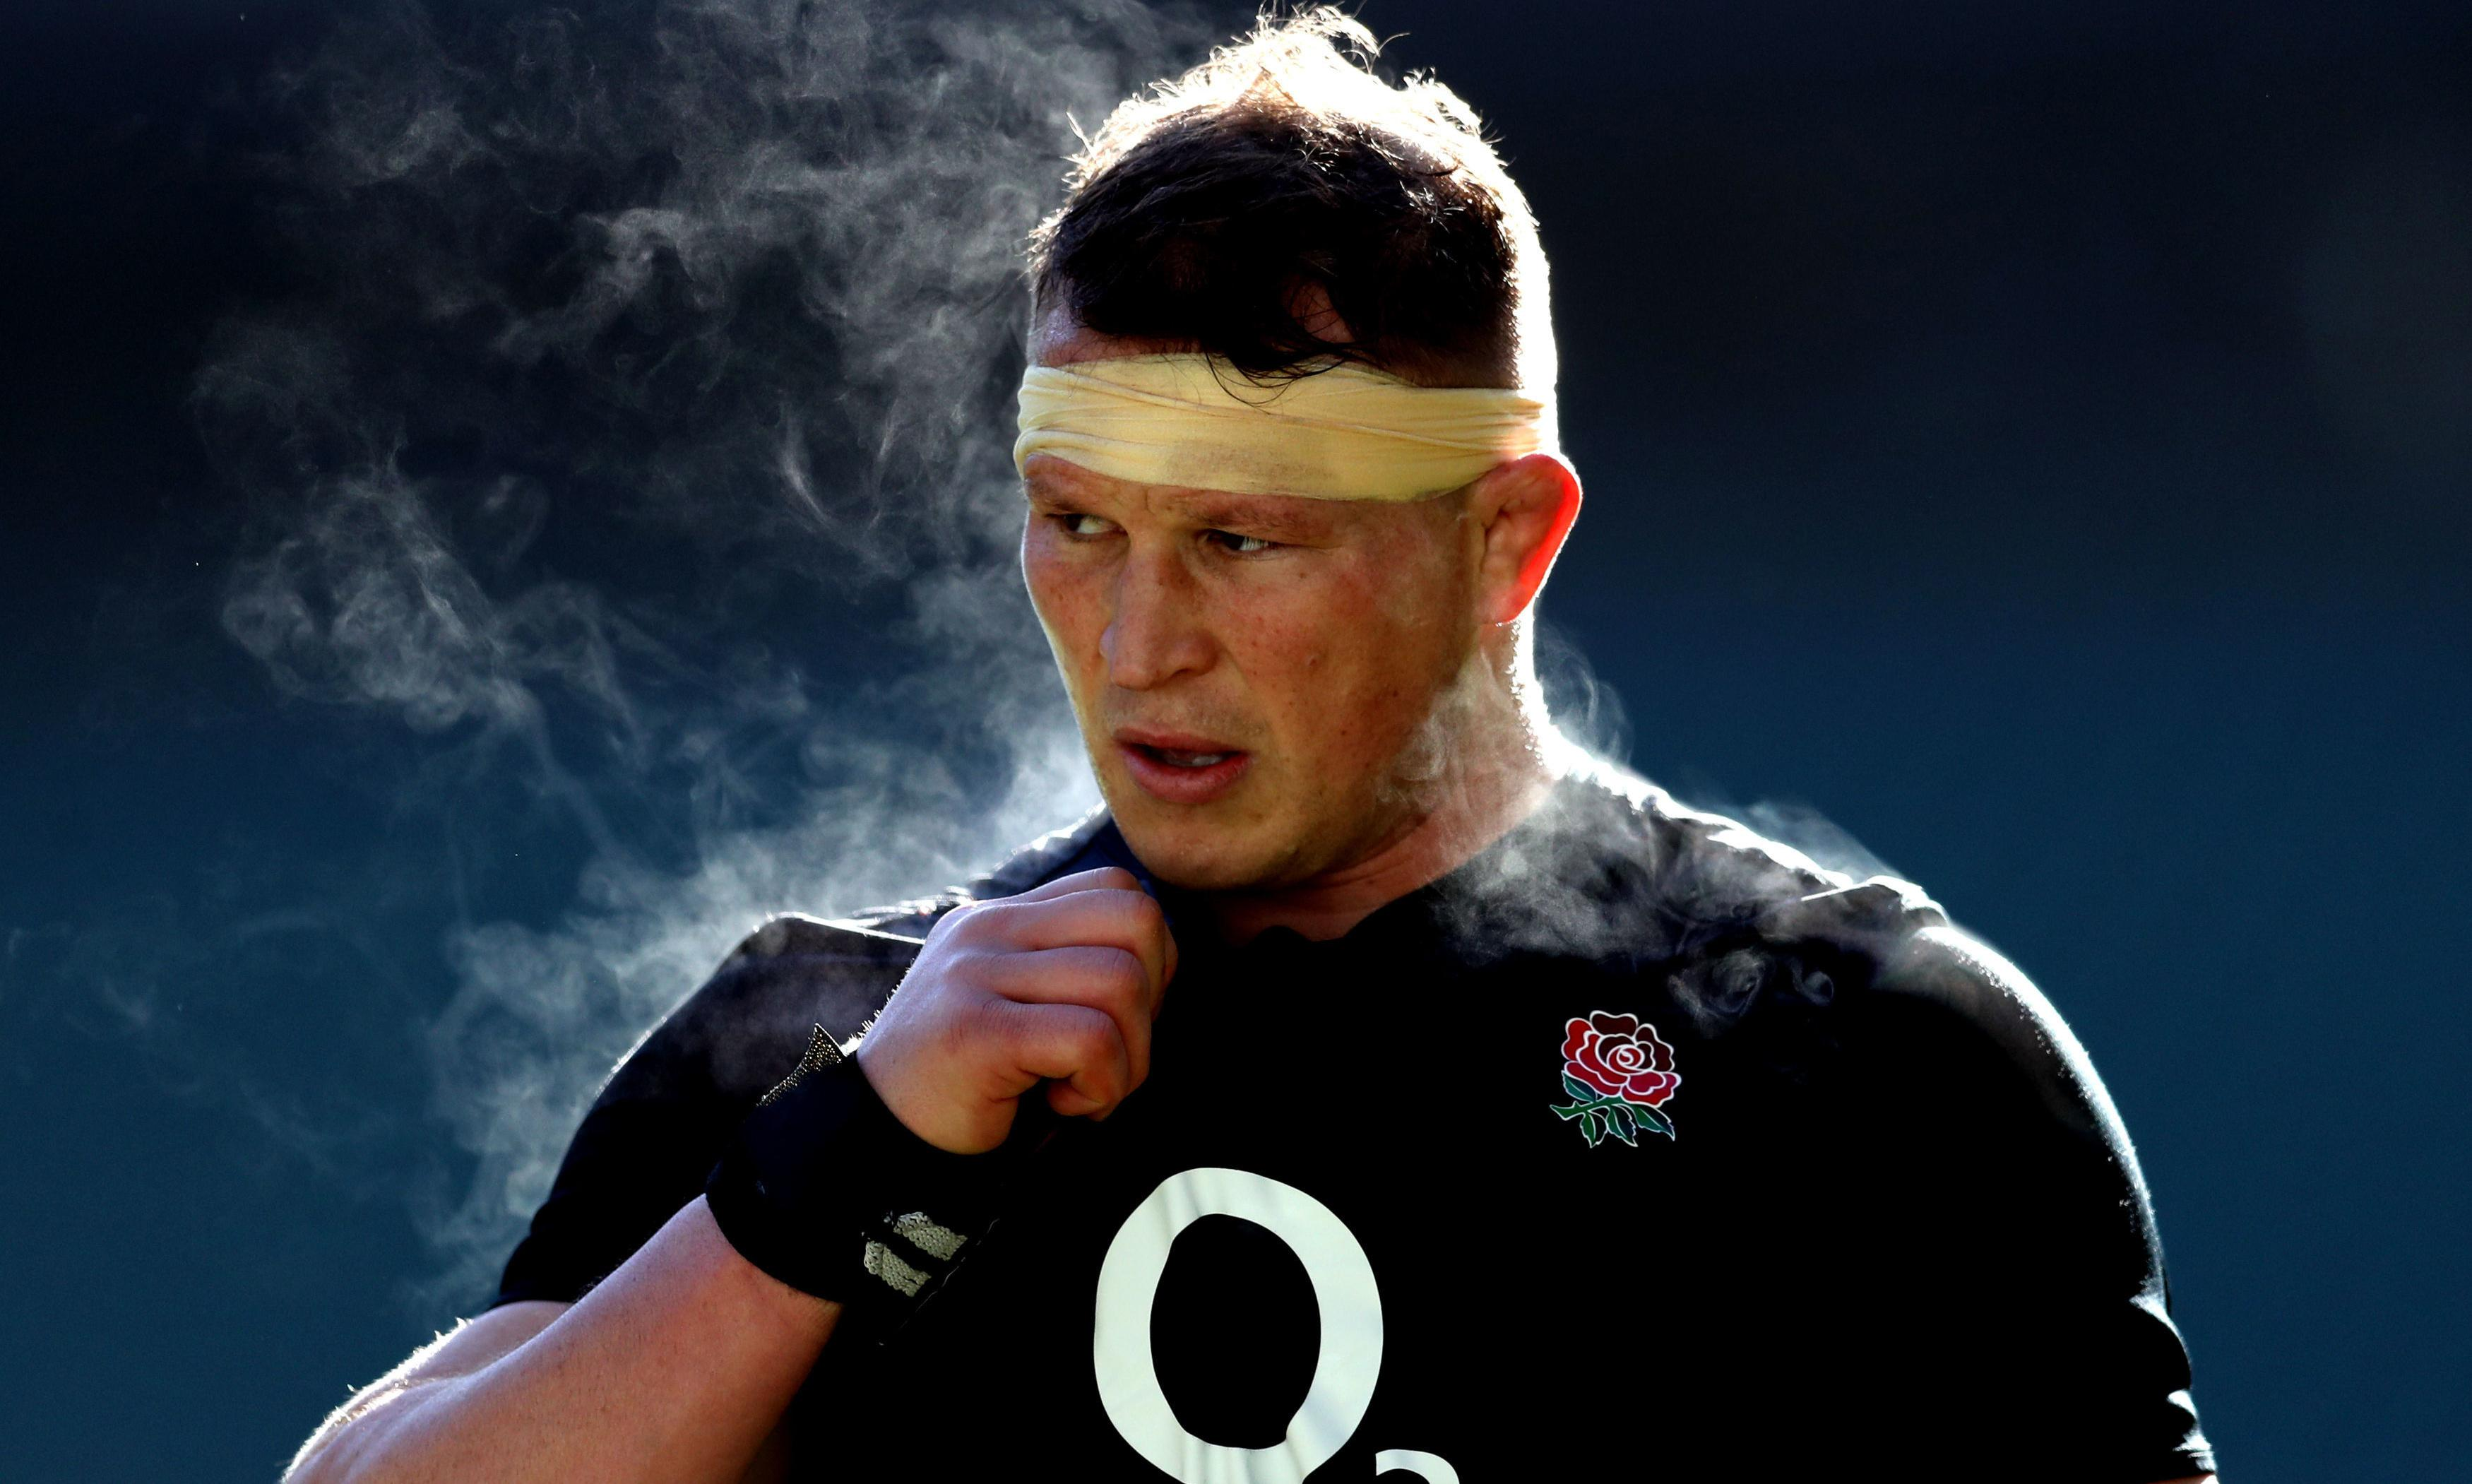 England Rugby World Cup training squad: Hartley, Robshaw and Care out